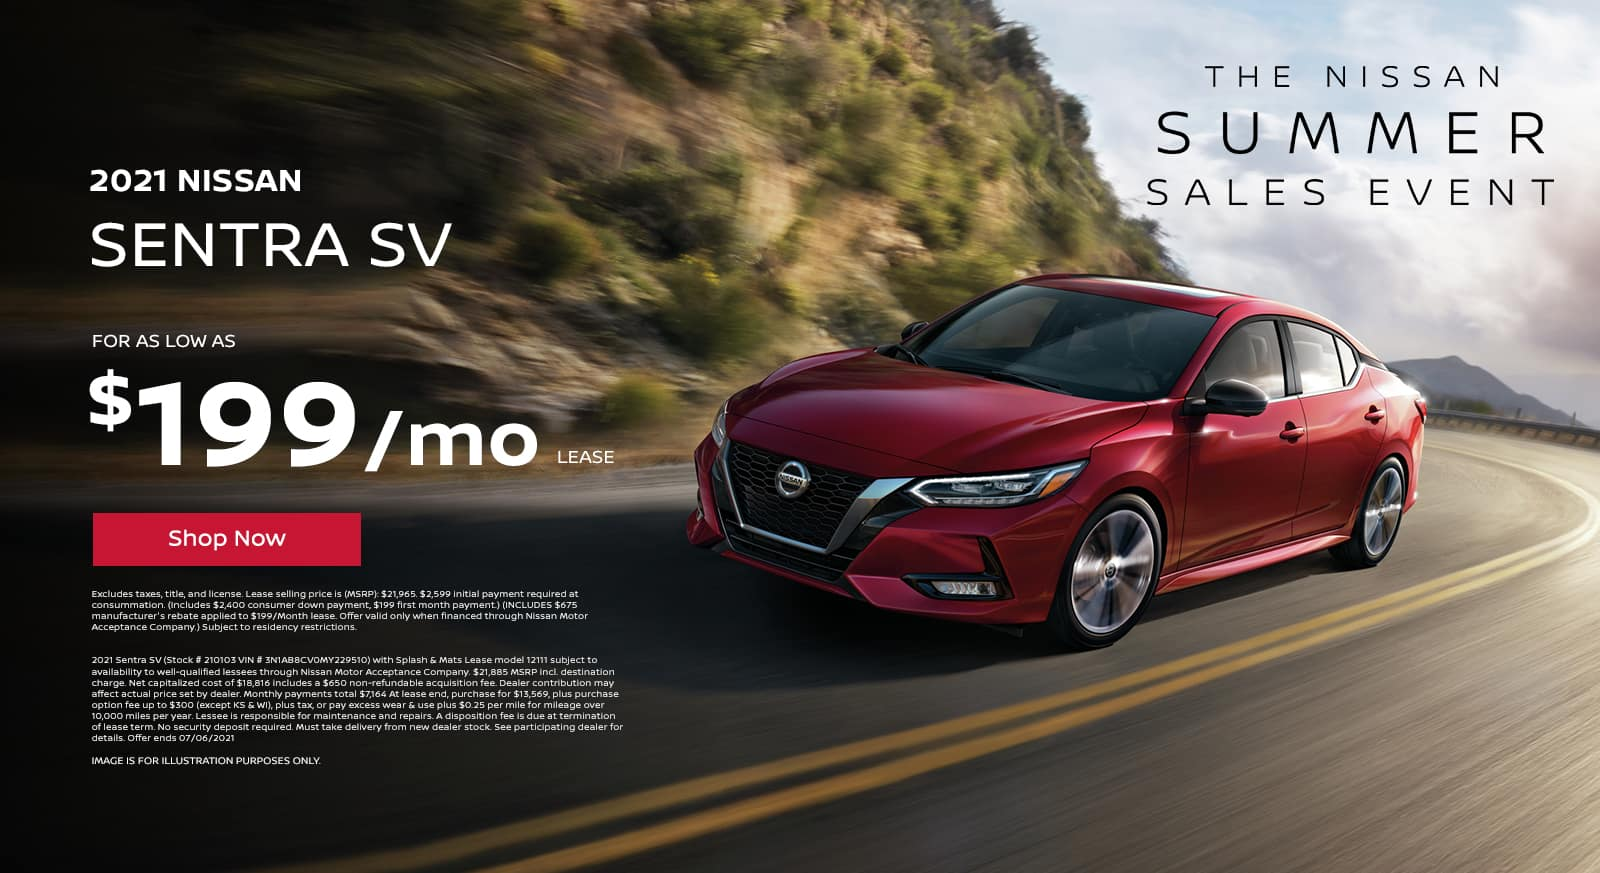 2021 Sentra SV lease as low as $199/mo!